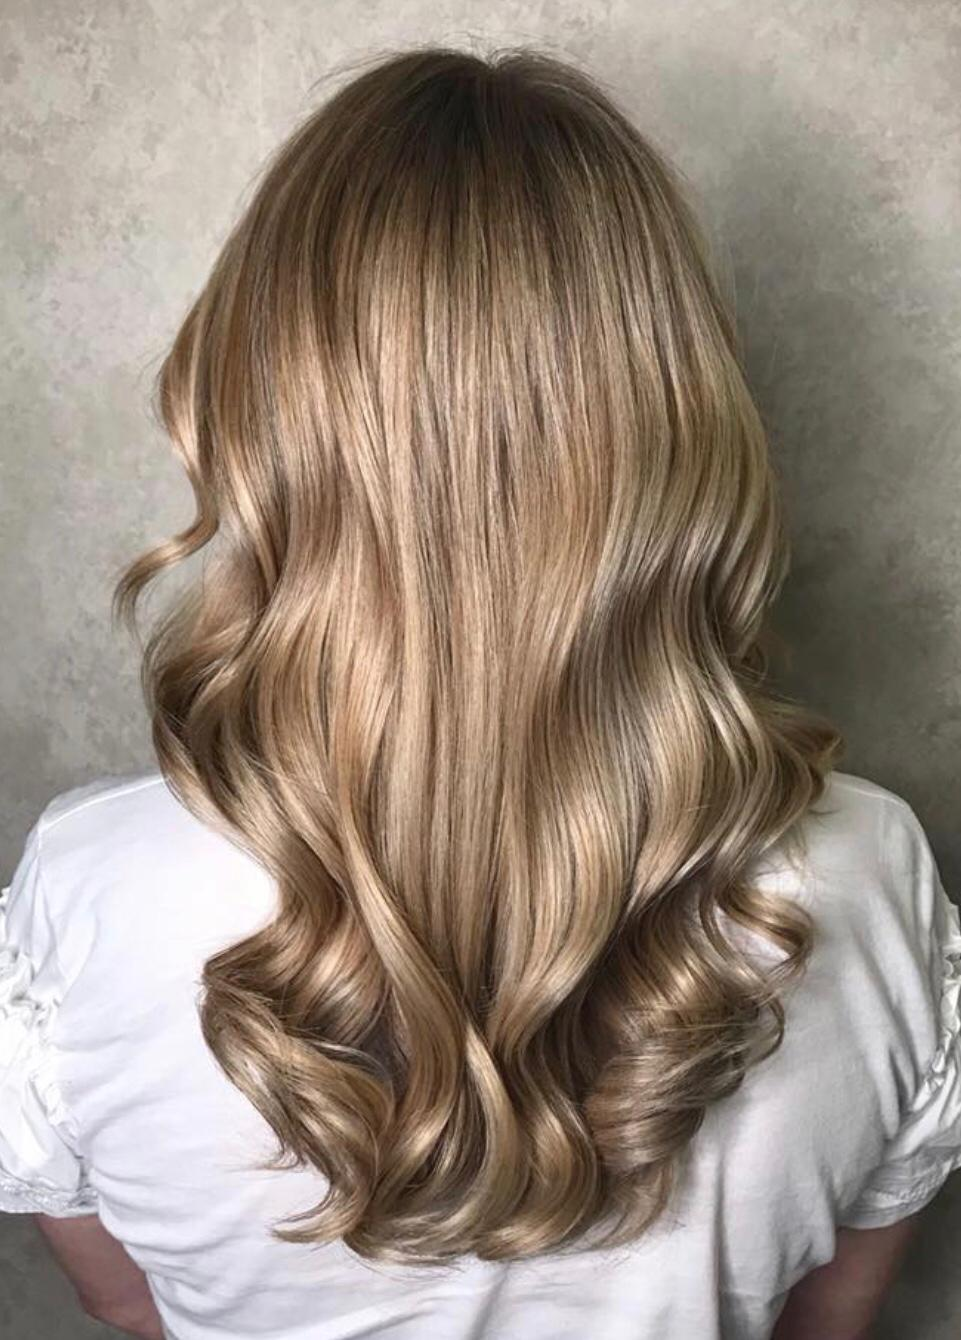 Special highlights techniques